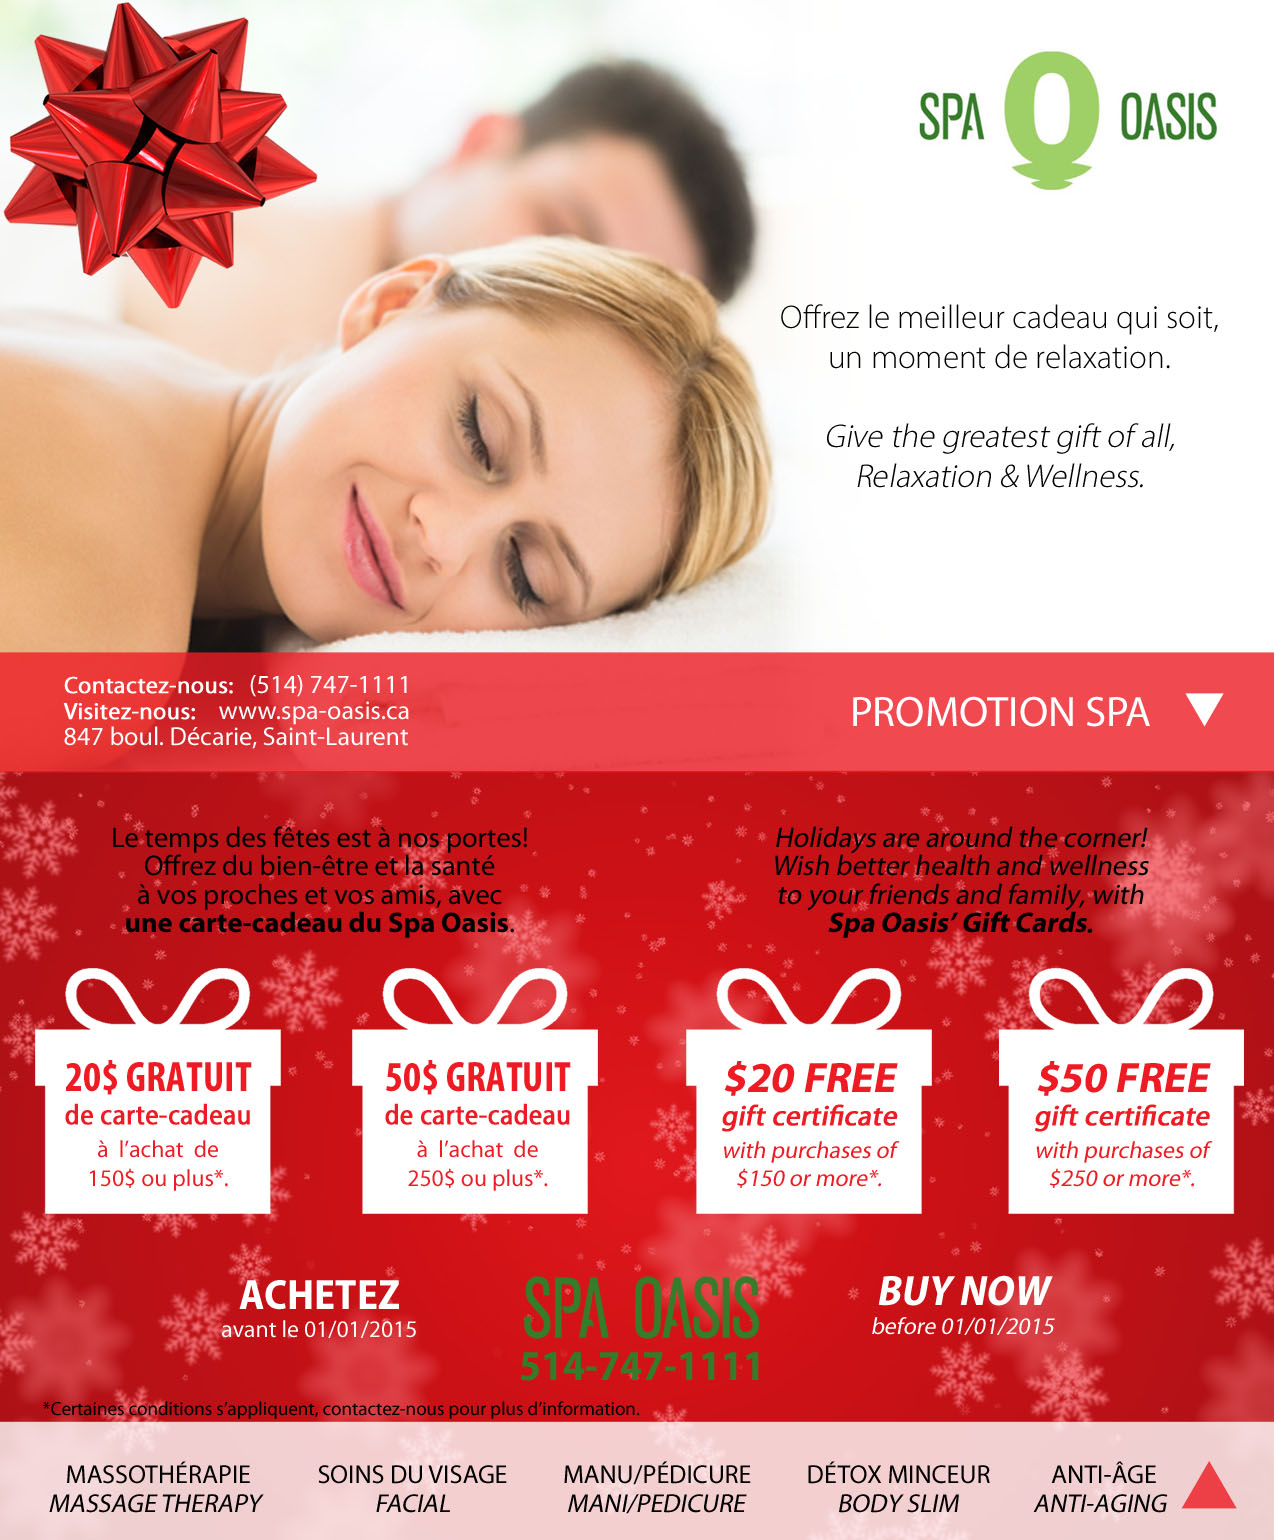 How to successfully promote your spa online in for 12 days of christmas salon specials